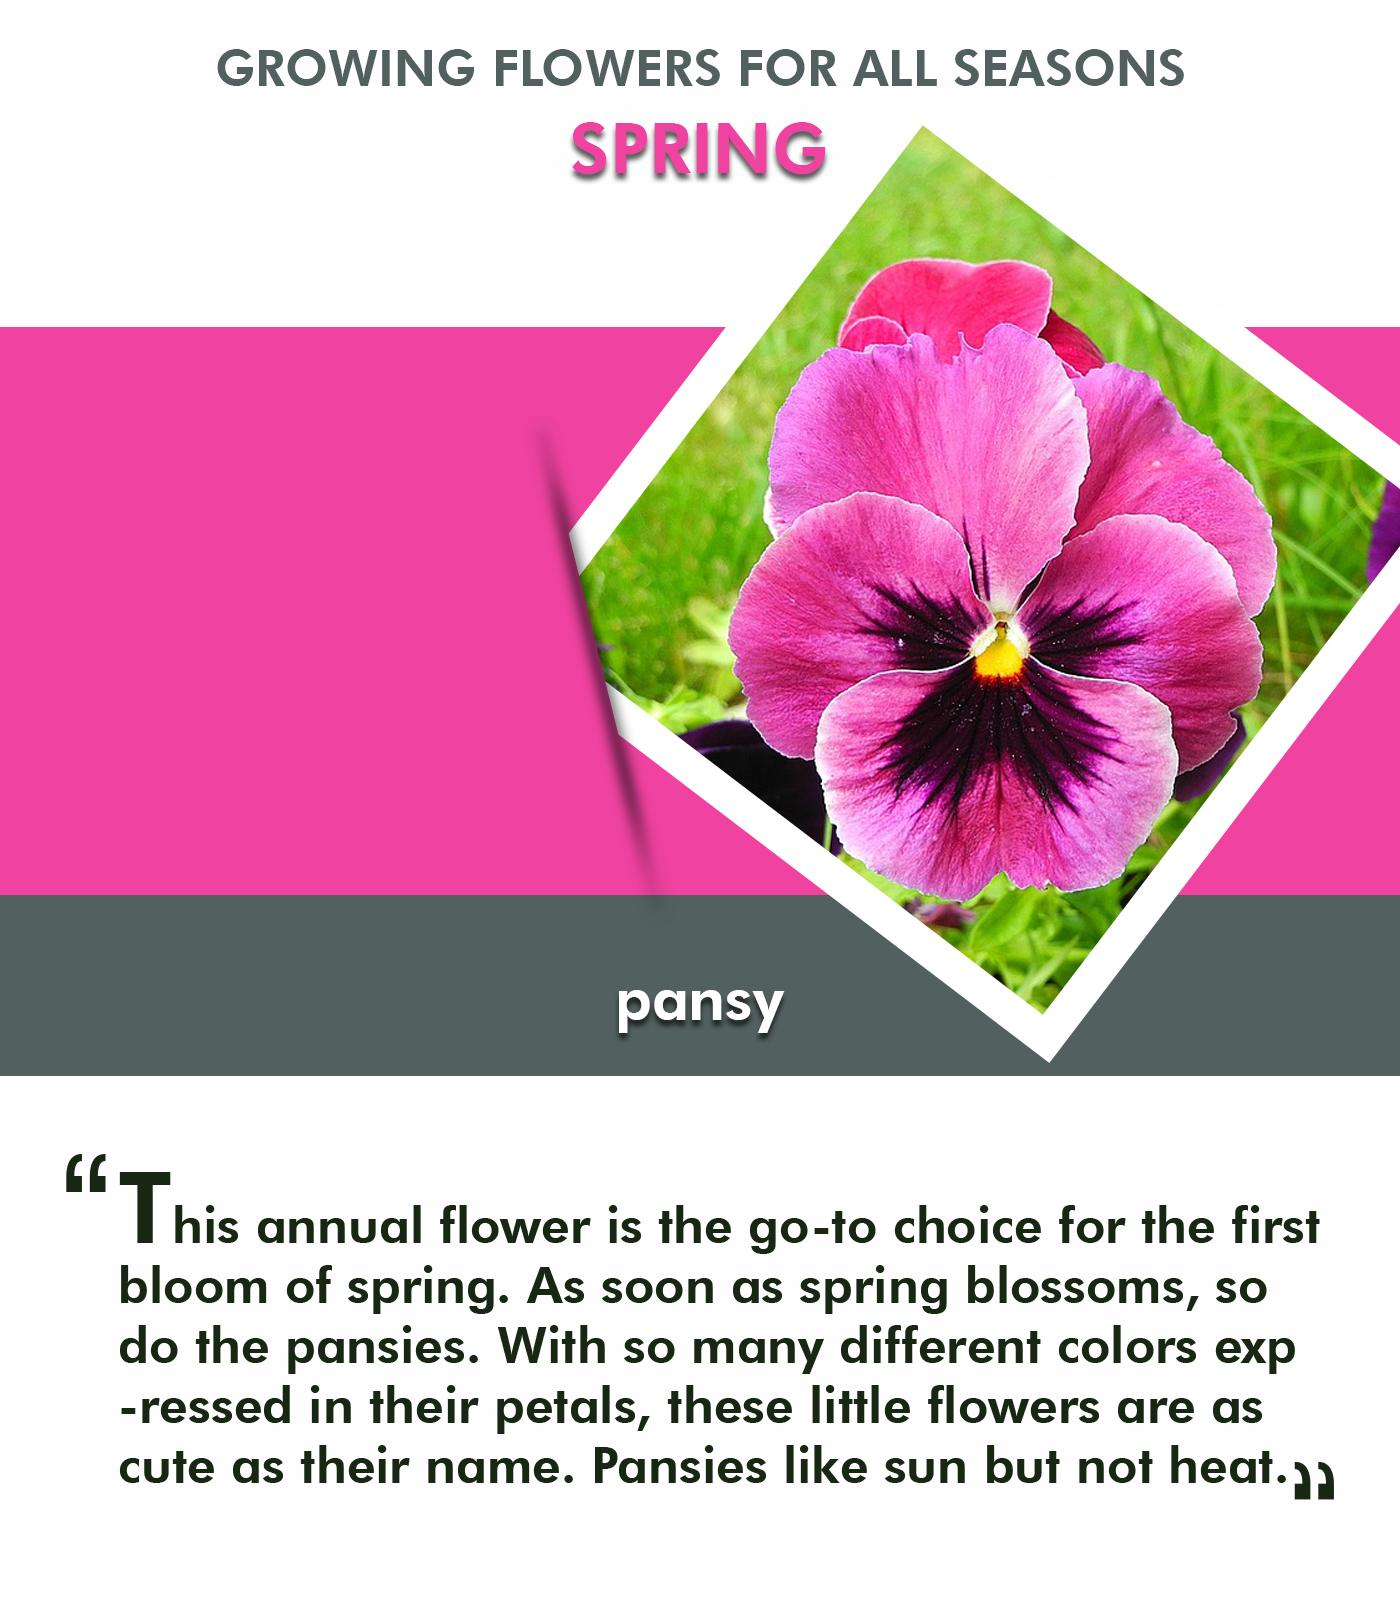 Tips for Selecting and Growing Flowers for all Seasons